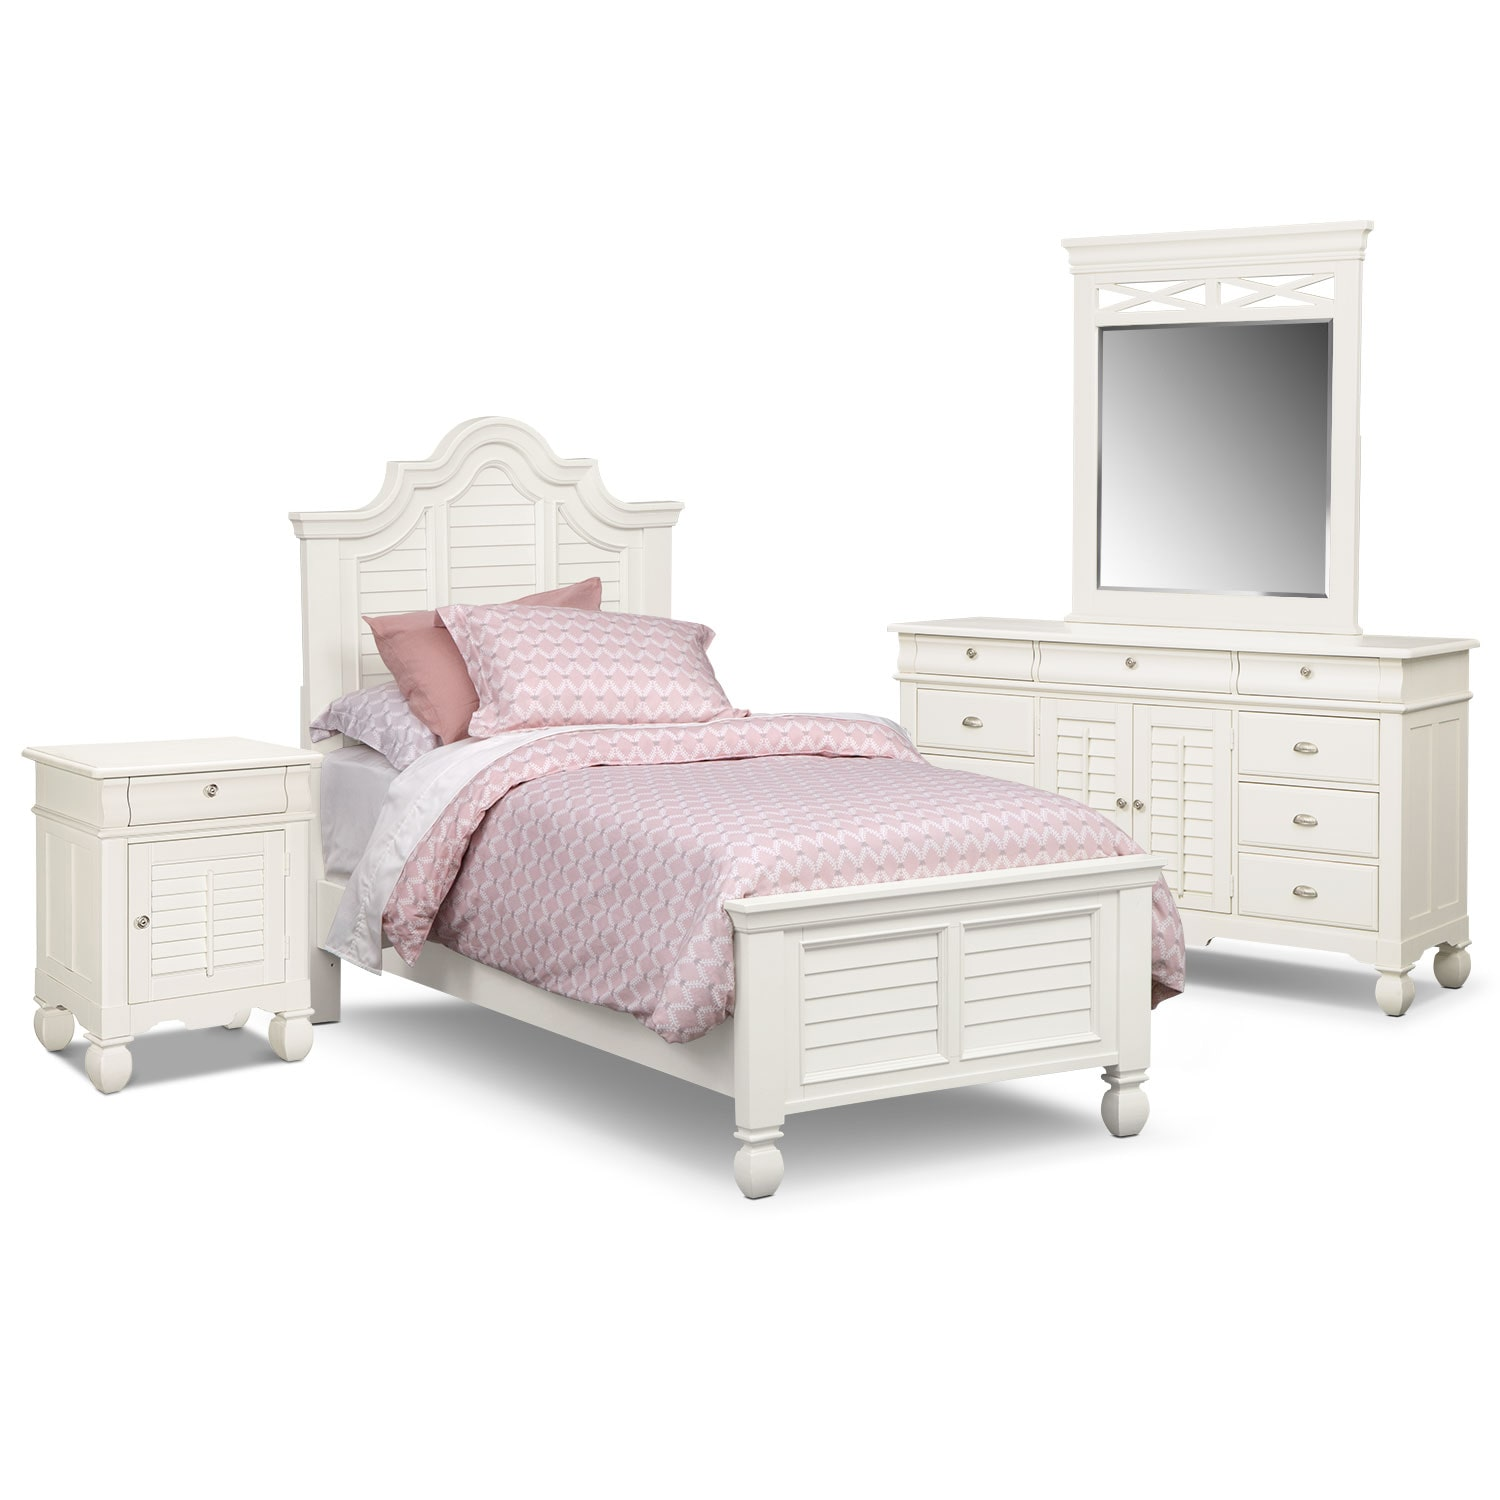 Kids Furniture - Plantation Cove 6-Piece Twin Bedroom Set with Door Nightstand - White